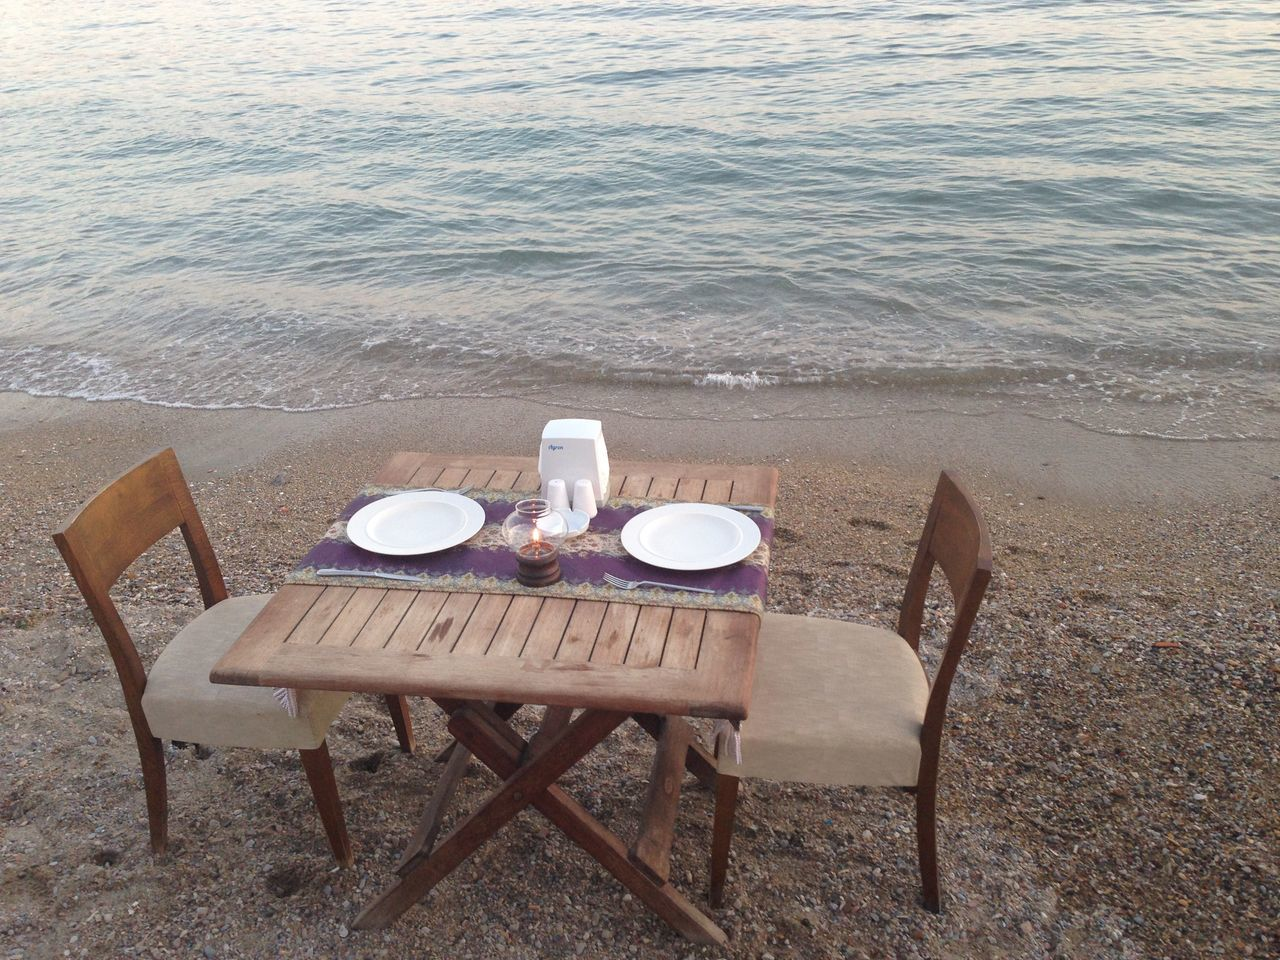 Outdoors Sea Shore Tranquil Scene Tranquility Water Dinner Time Dinner By The Beach Bodrum, Turkey Dinner Date Dinner Table